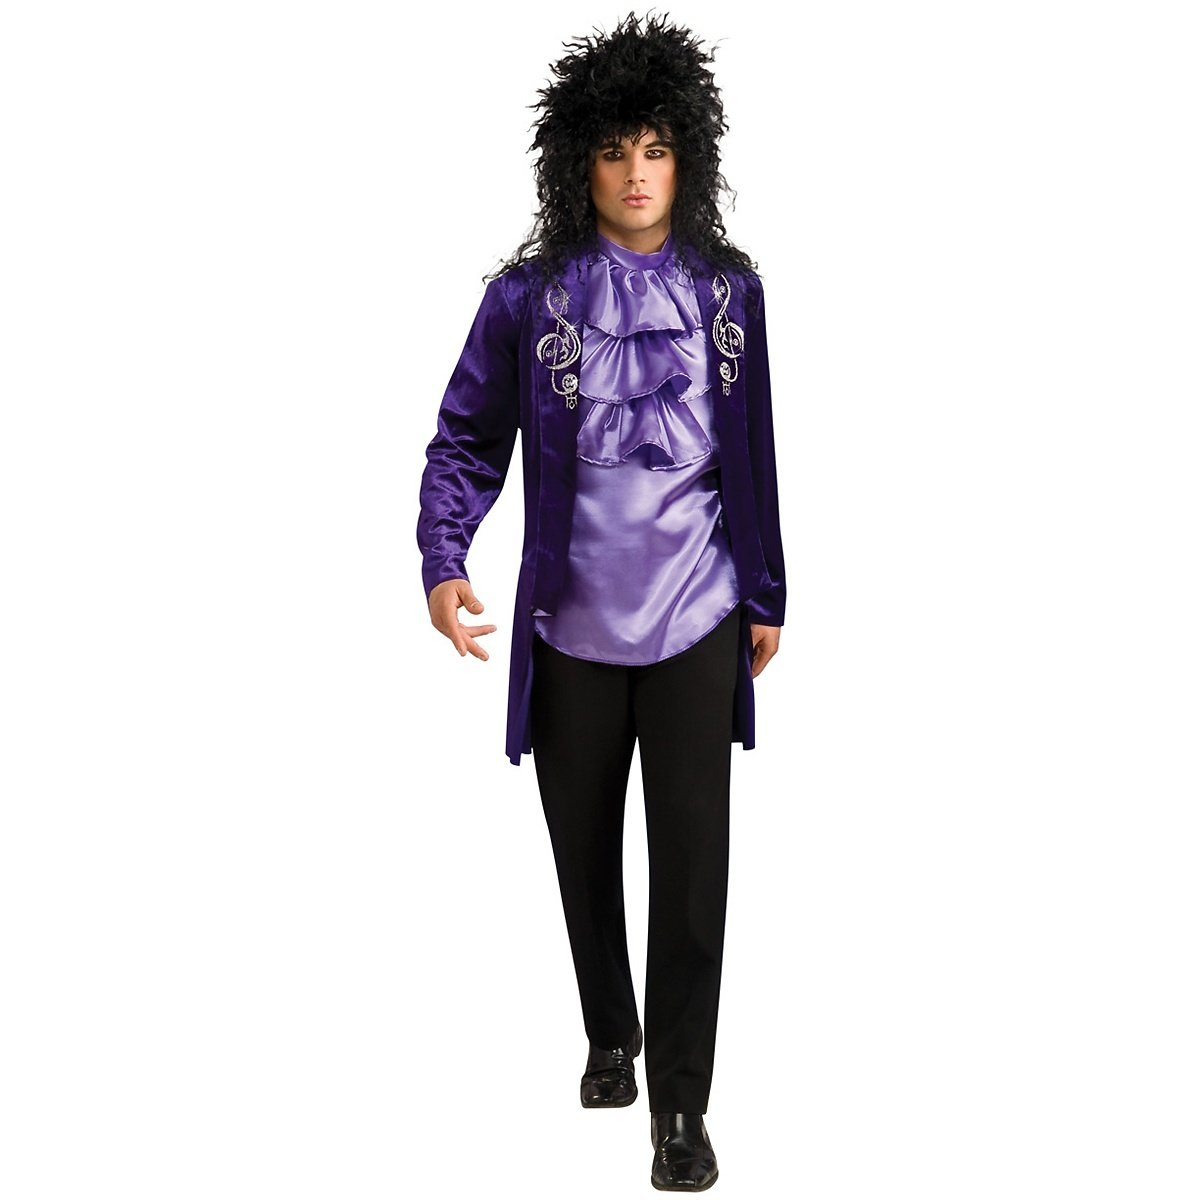 Amazon.com Rubies Glam Rock Star 70s 80s Mens Prince Halloween Costume Clothing  sc 1 st  Amazon.com & Amazon.com: Rubies Glam Rock Star 70s 80s Mens Prince Halloween ...